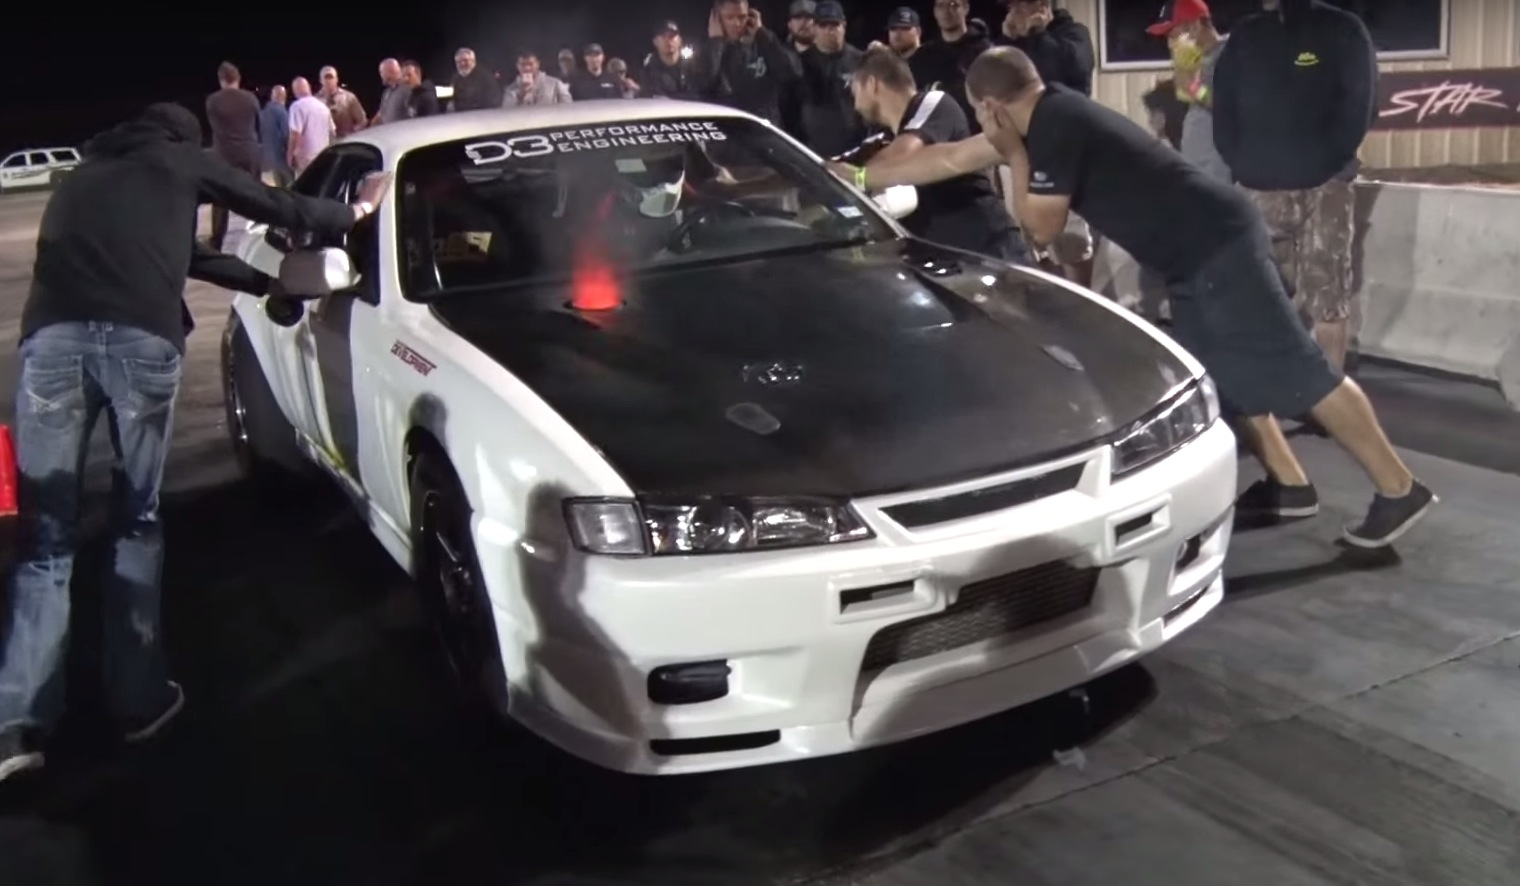 1600-hp-2jz-nissan-240sx-goes-sliding-at-no-prep-drag-racing-event-kills-some-v8s-video-102524_1